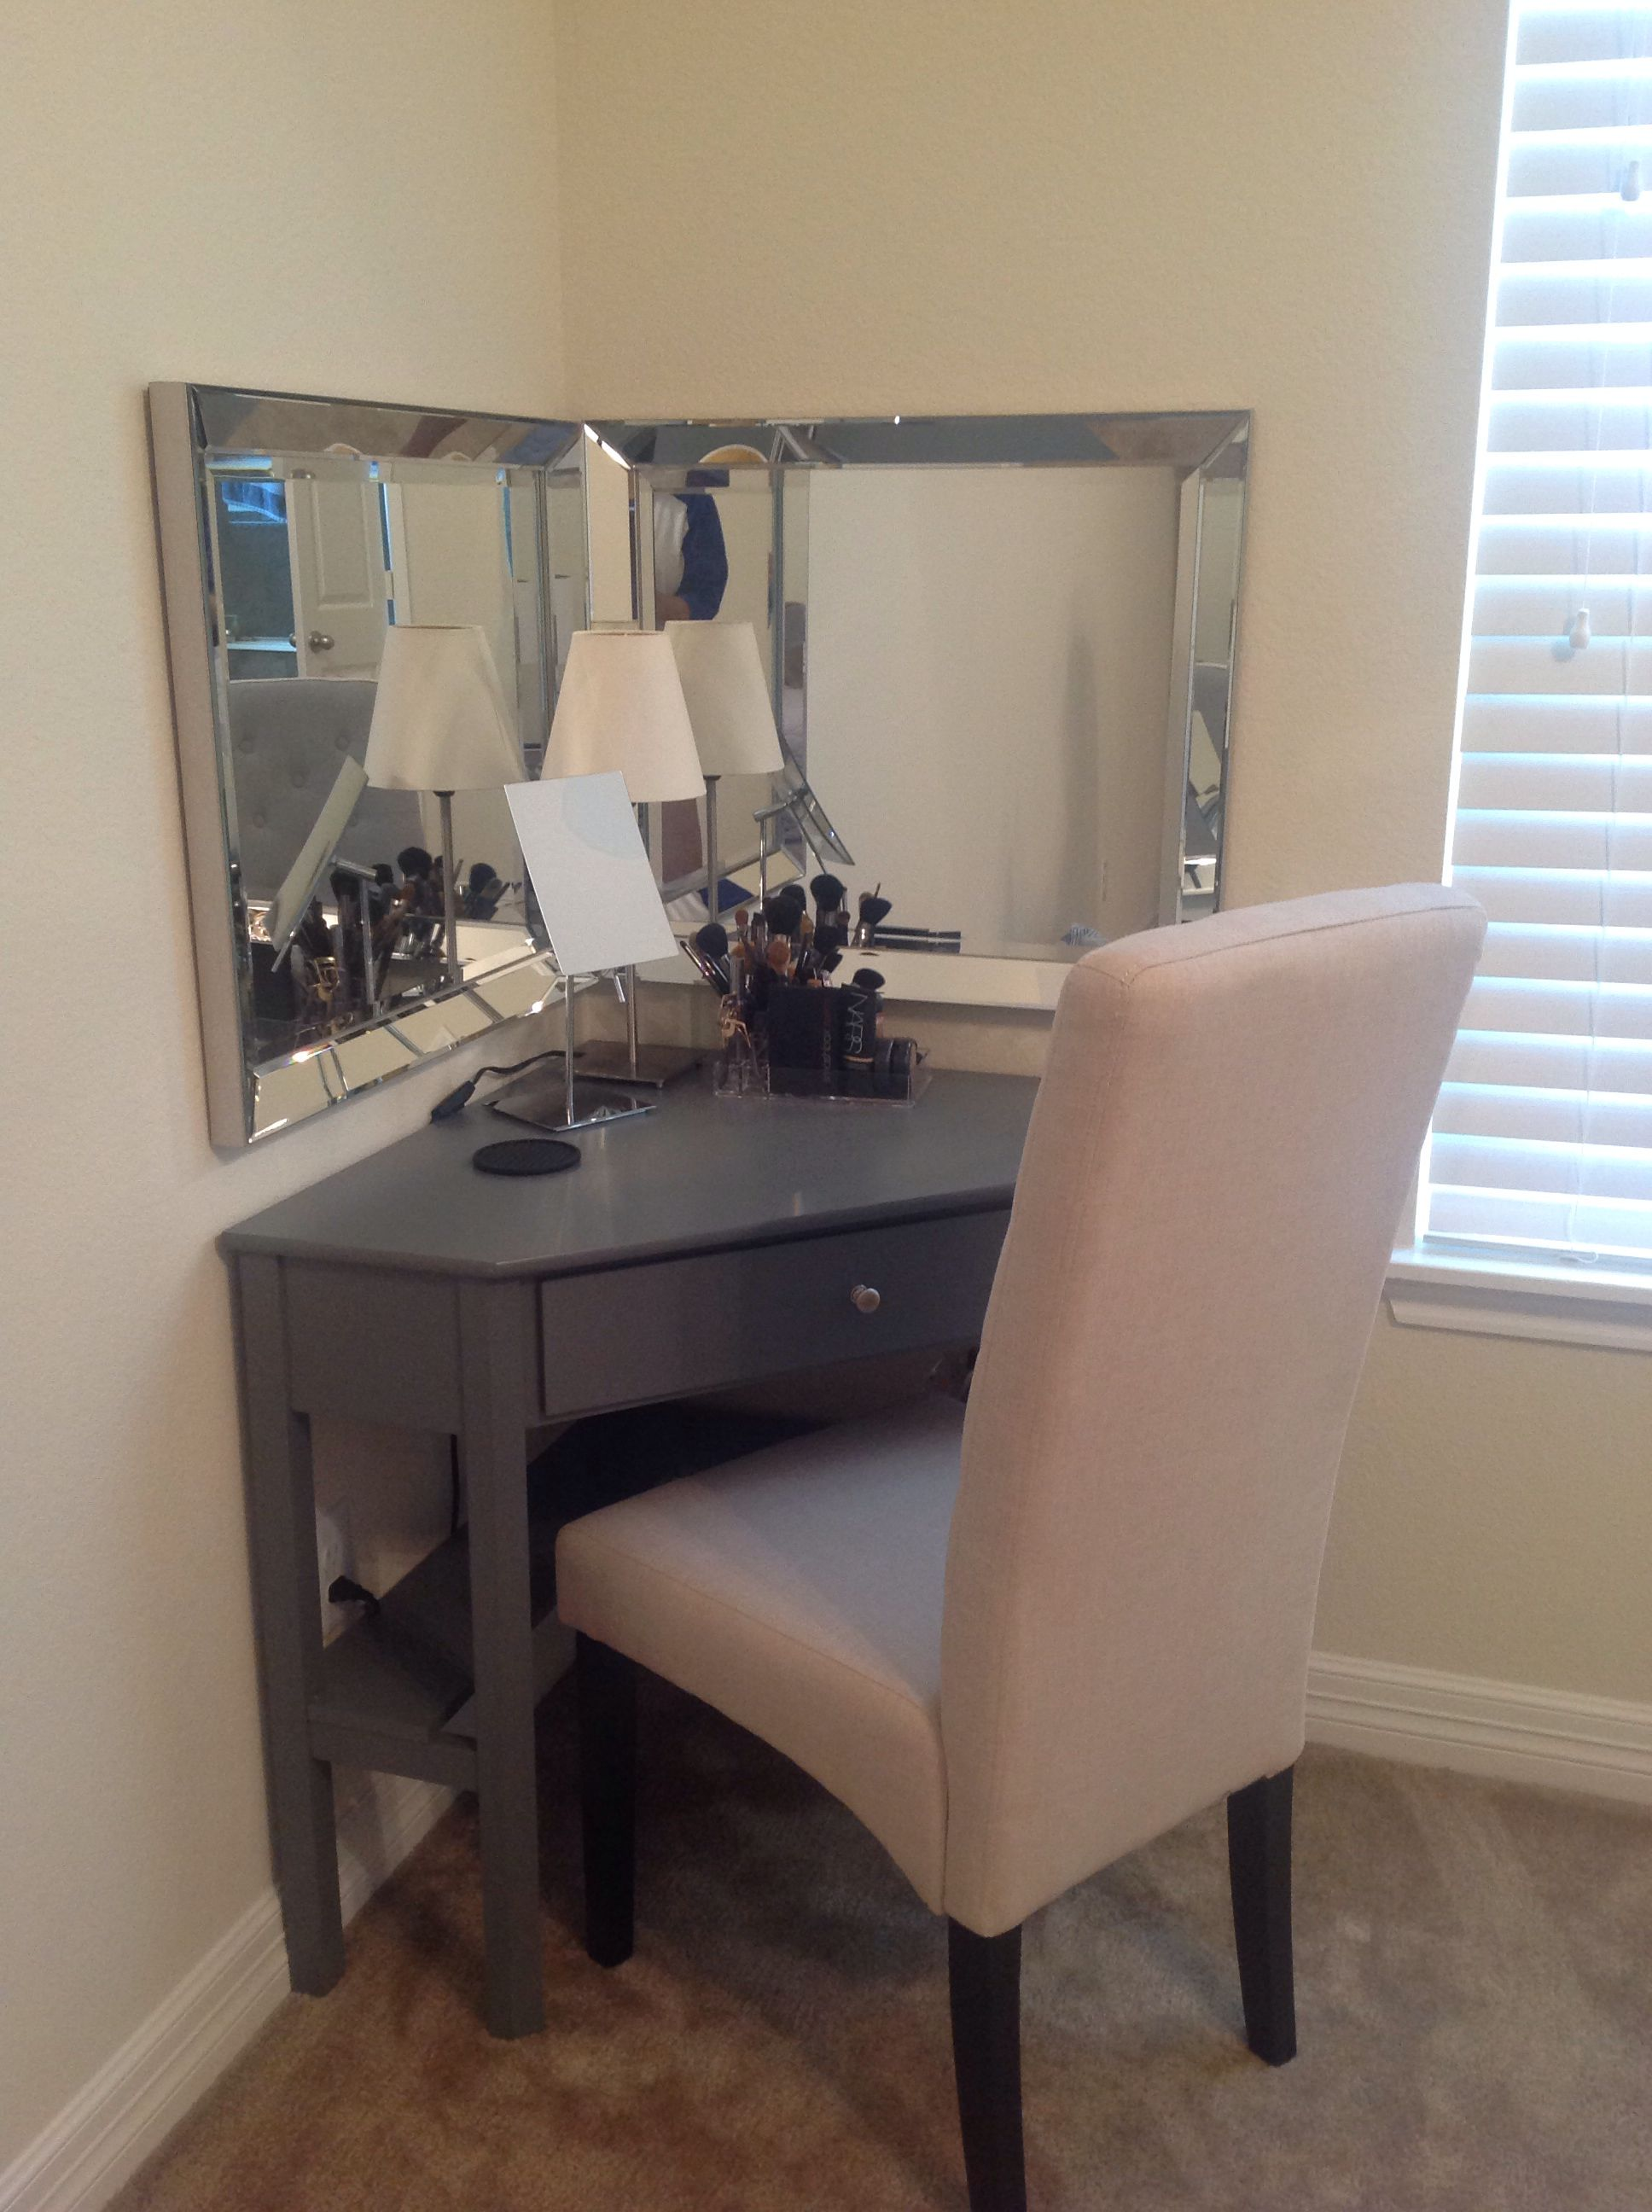 Diy Bedroom Vanity Corner Desk Chair And Desktop Mirror From Overstock Two Mirrors From Homegoods Perfect For T Bedroom Desk Bedroom Mirror Trendy Bedroom